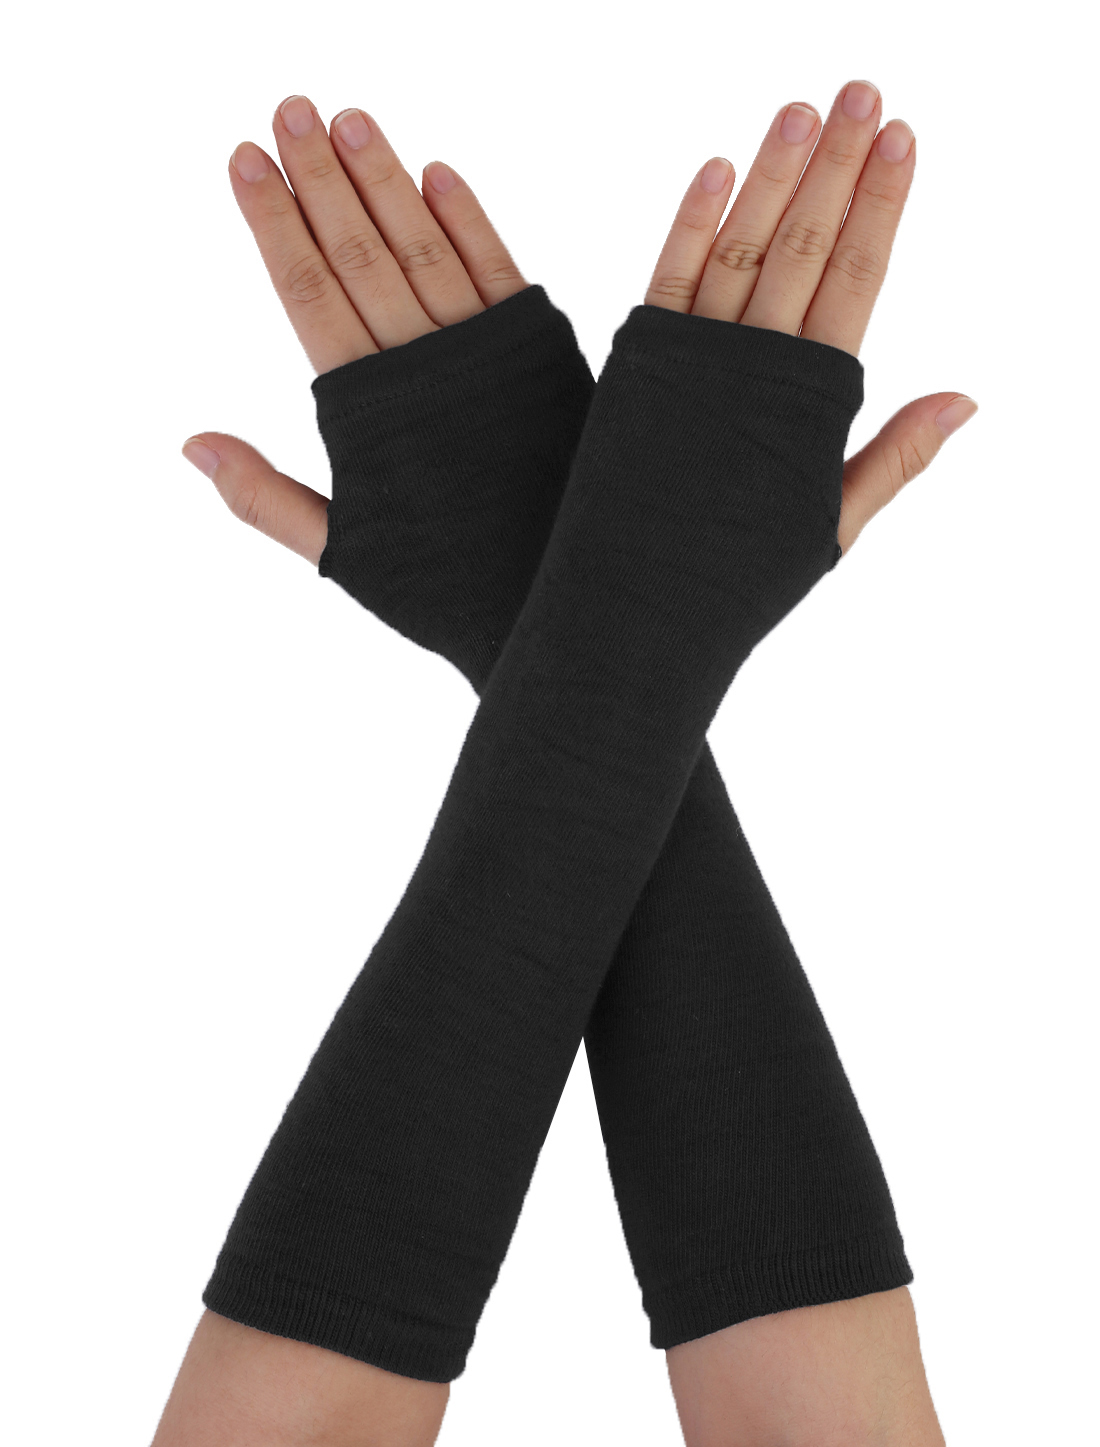 Ladies Woman Black Stretchy Arm Warm Hand Knit Sleeve Fingerless Gloves Pair